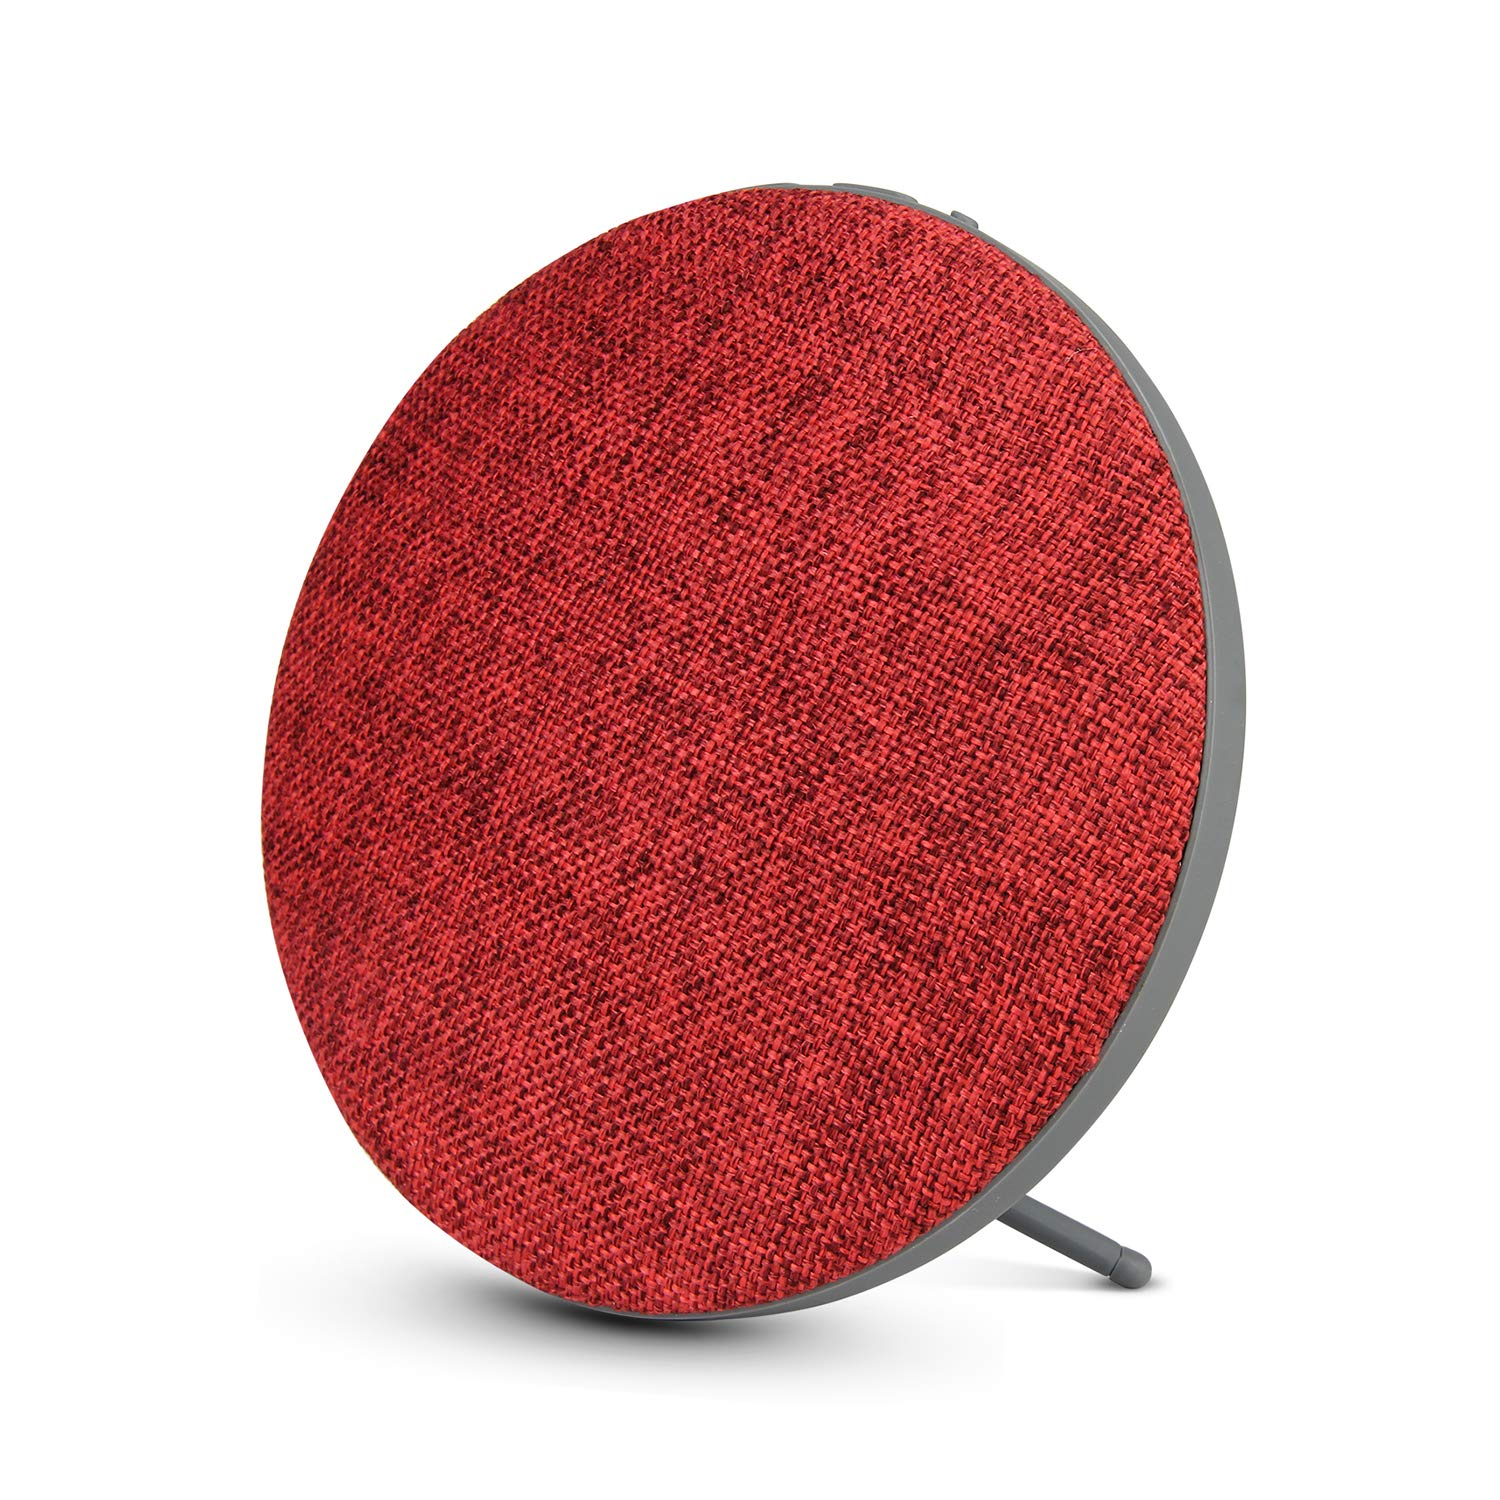 Portable Wireless Bluetooth Speaker with High Sound Quality,Bookshelf Desktop Fabric Speakers, Loud Volume,Rich Bass,Microphone,Hands-Free Calling,AUX Input,Suitable for Indoor&Outdoor(Red) by VOISECRET